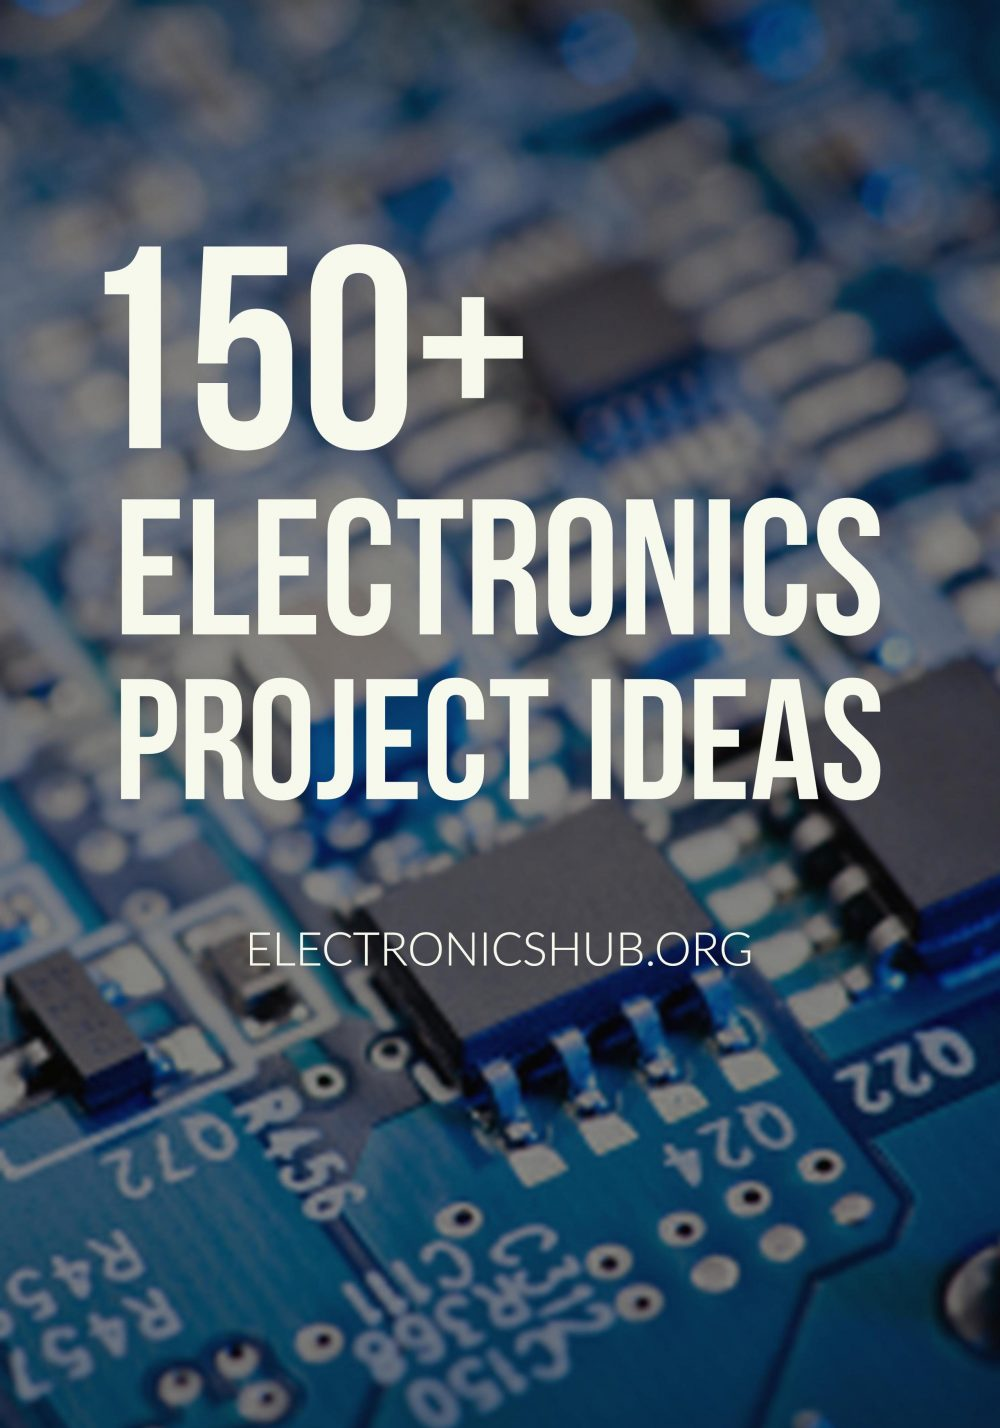 hight resolution of 150 electronics projects for engineering students telephone work interface device box wiring diagram free download